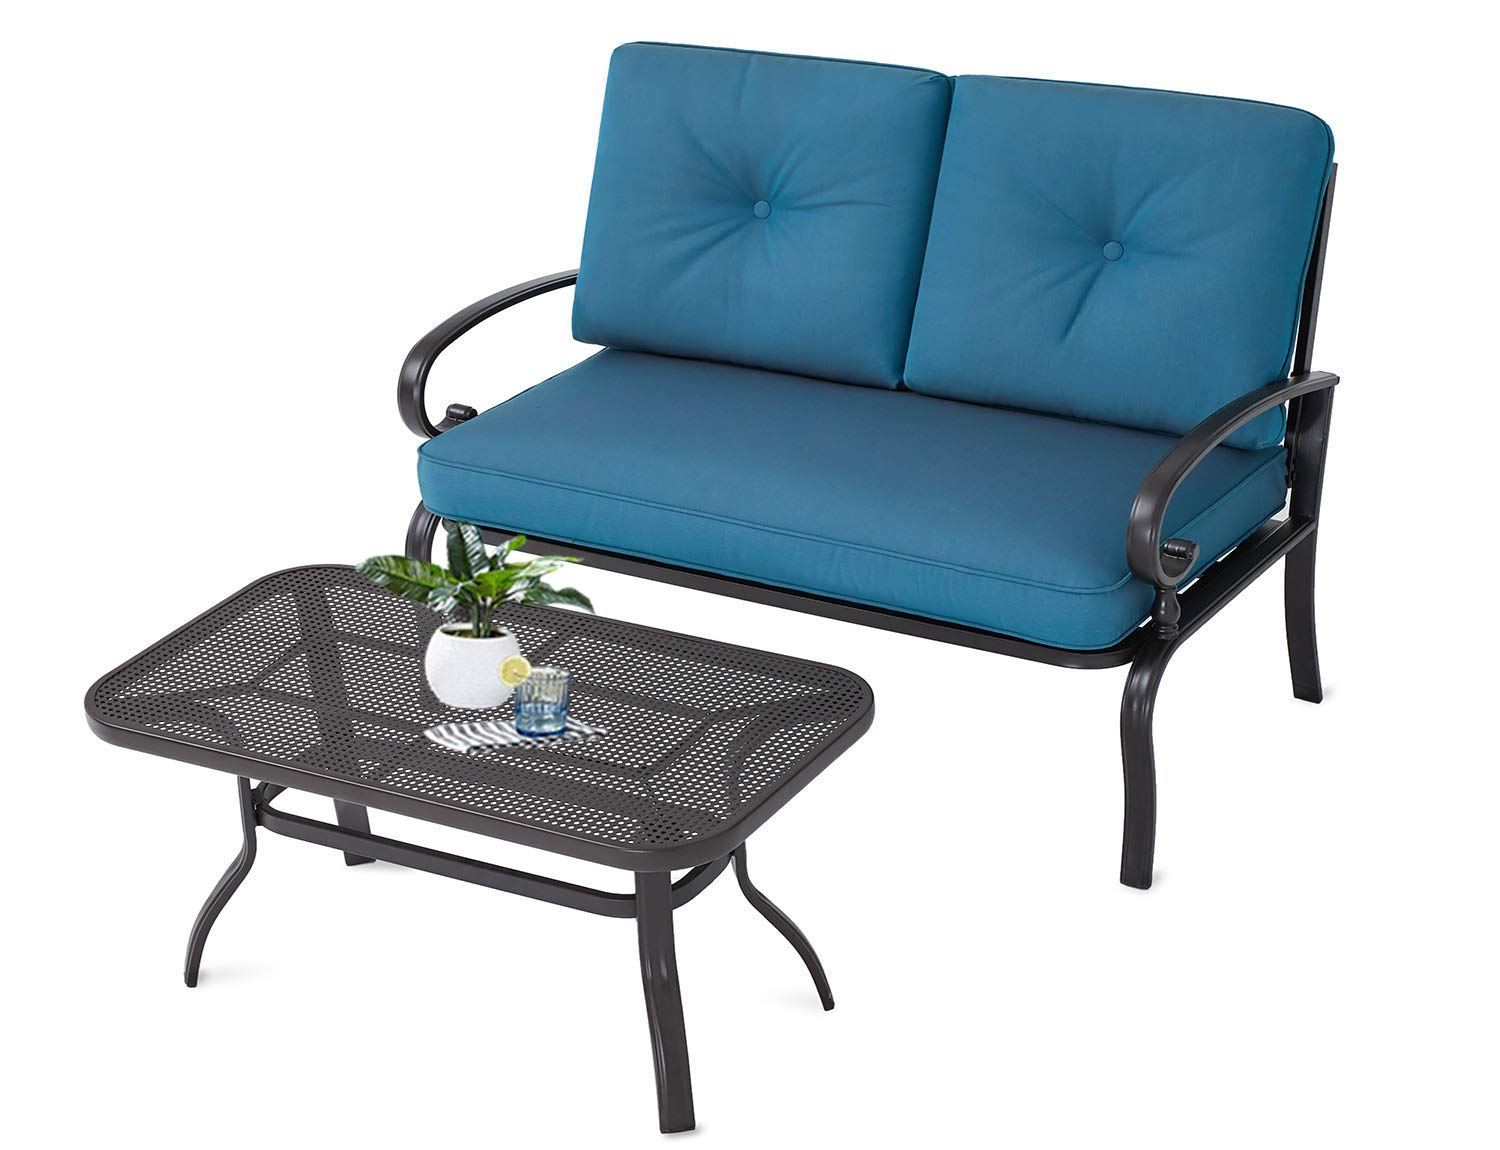 Incbruce Outdoor Patio Furniture Loveseat 2-Piece and Bistro Coffee Table Set Furniture Bench with Cushion, Lawn Front Porch Garden, Wrought Iron Frame, Peacock Blue by Incbruce